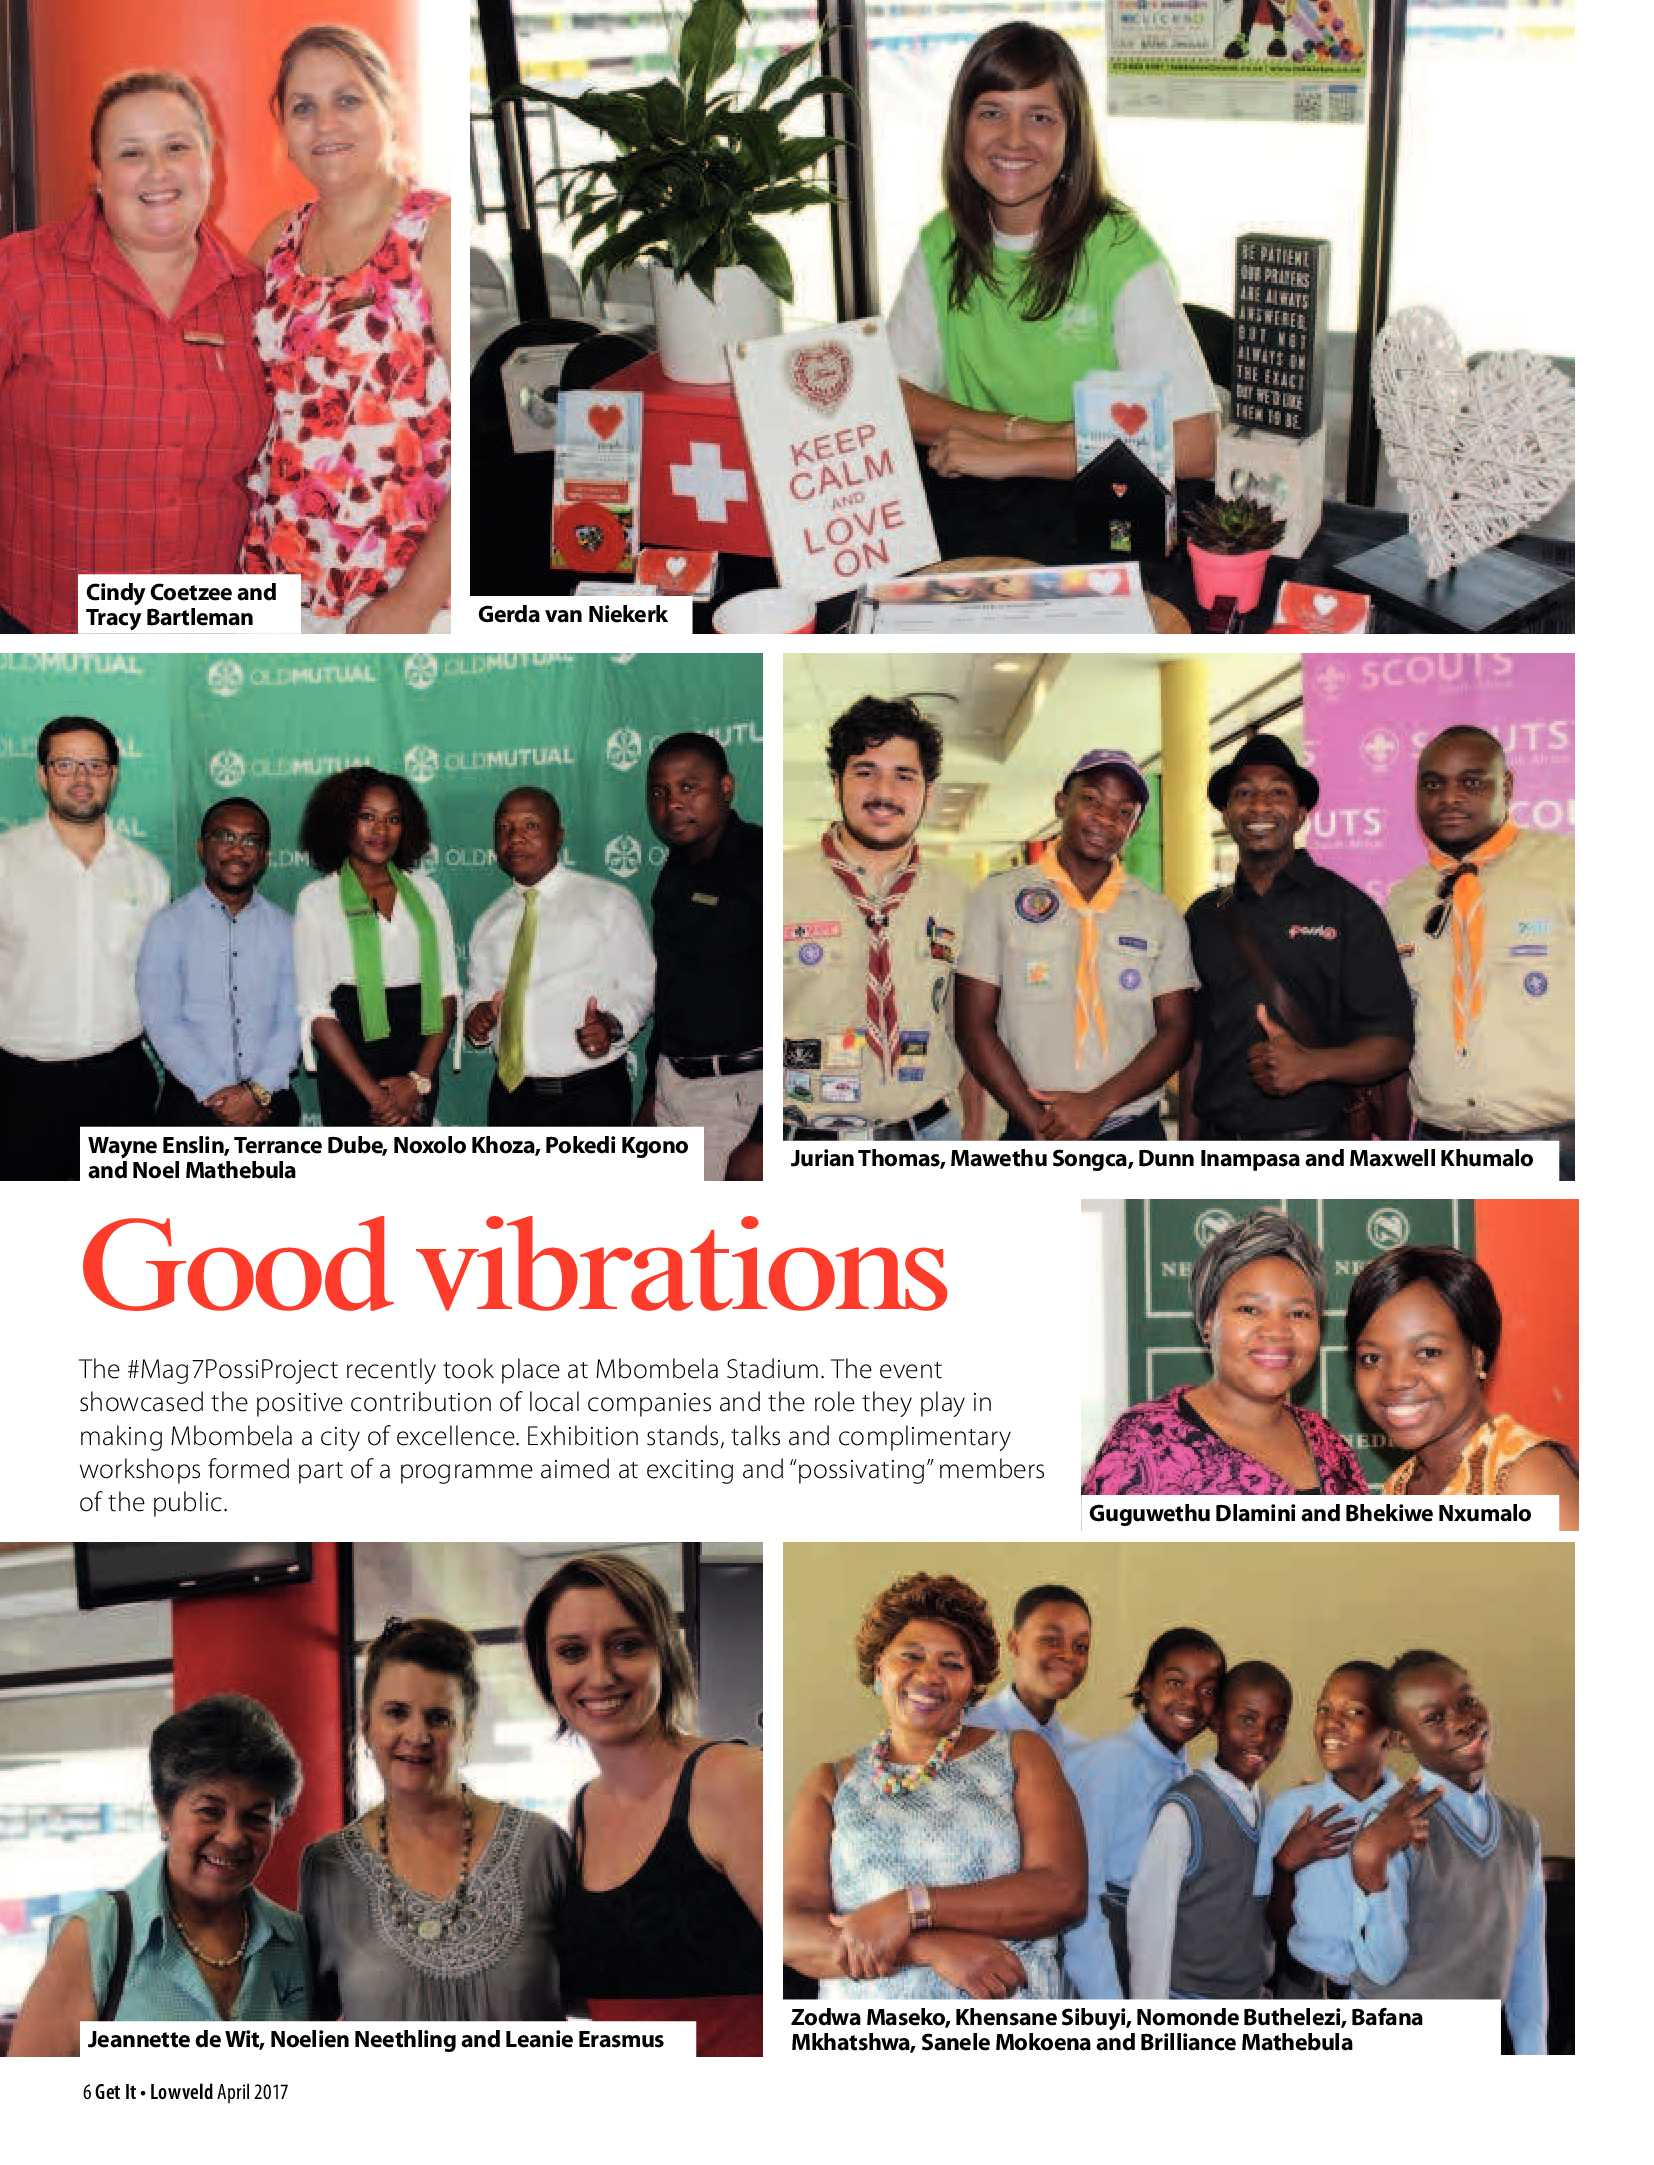 get-lowveld-april-2017-epapers-page-8